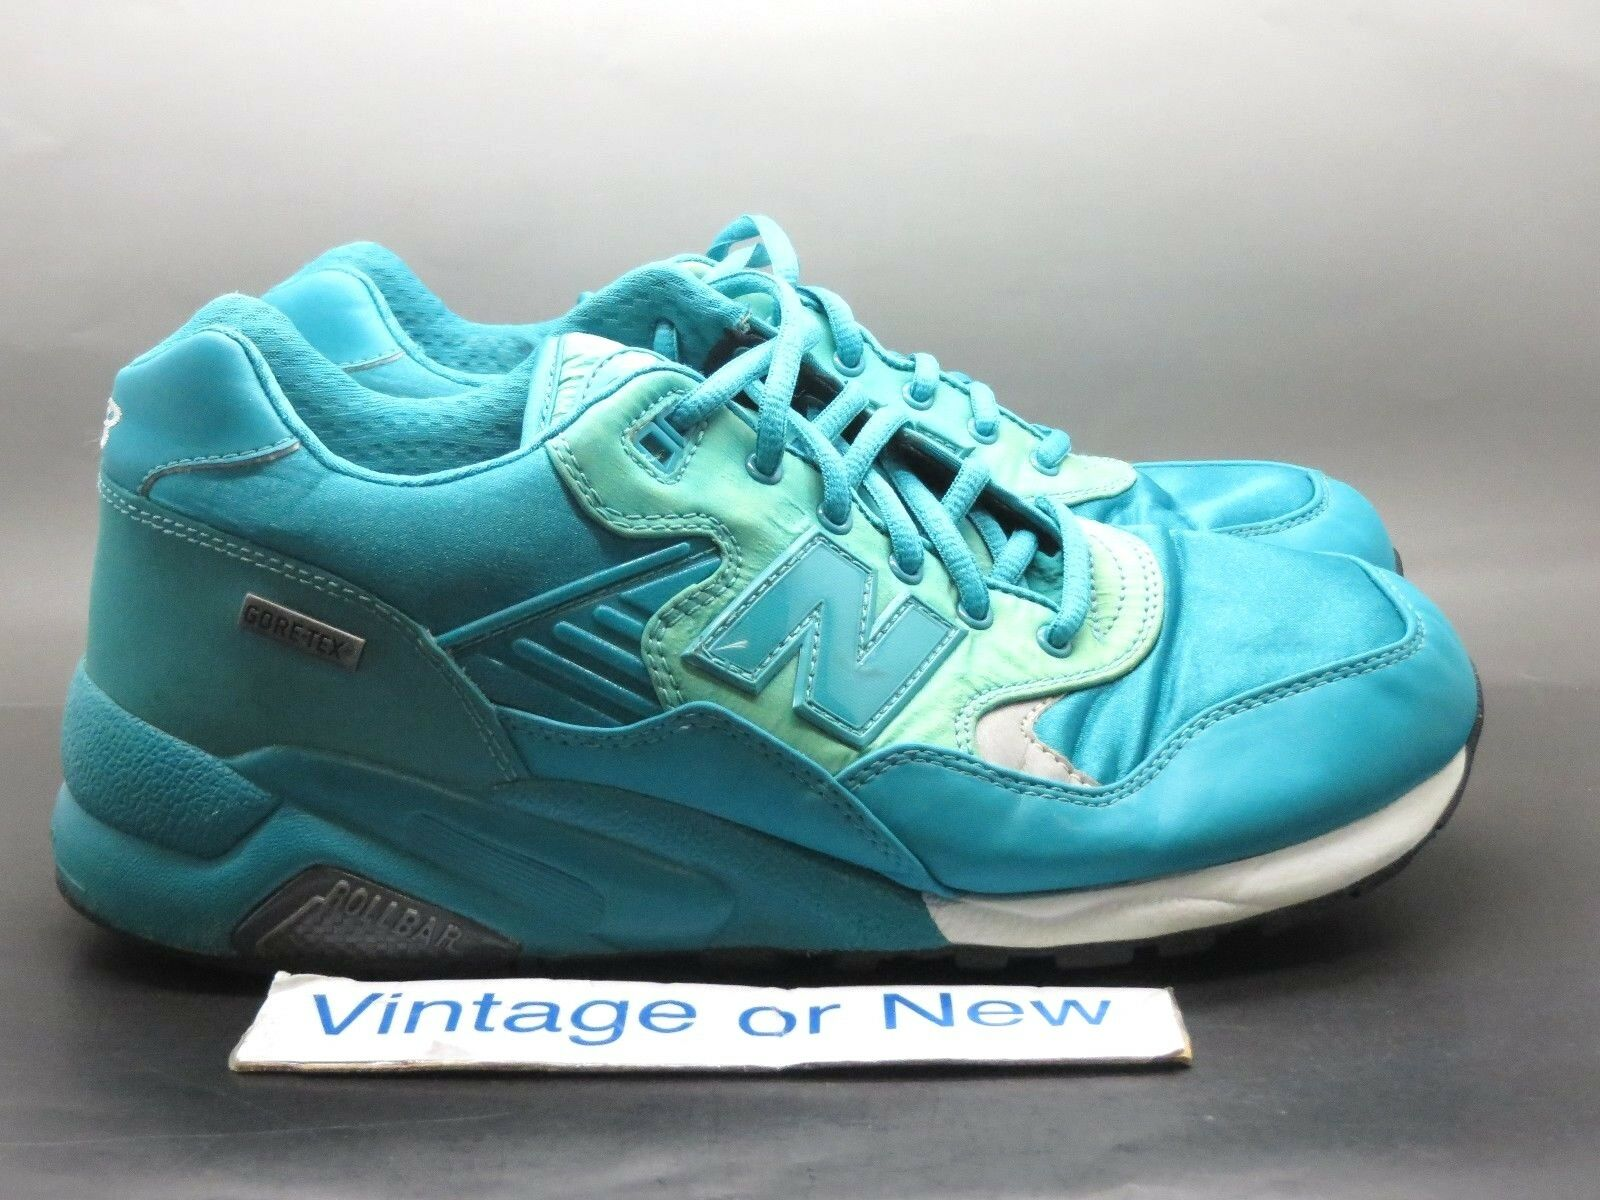 Men's New Balance 580 Goretex Aqua Marine MTG580TB Running Shoes sz 10